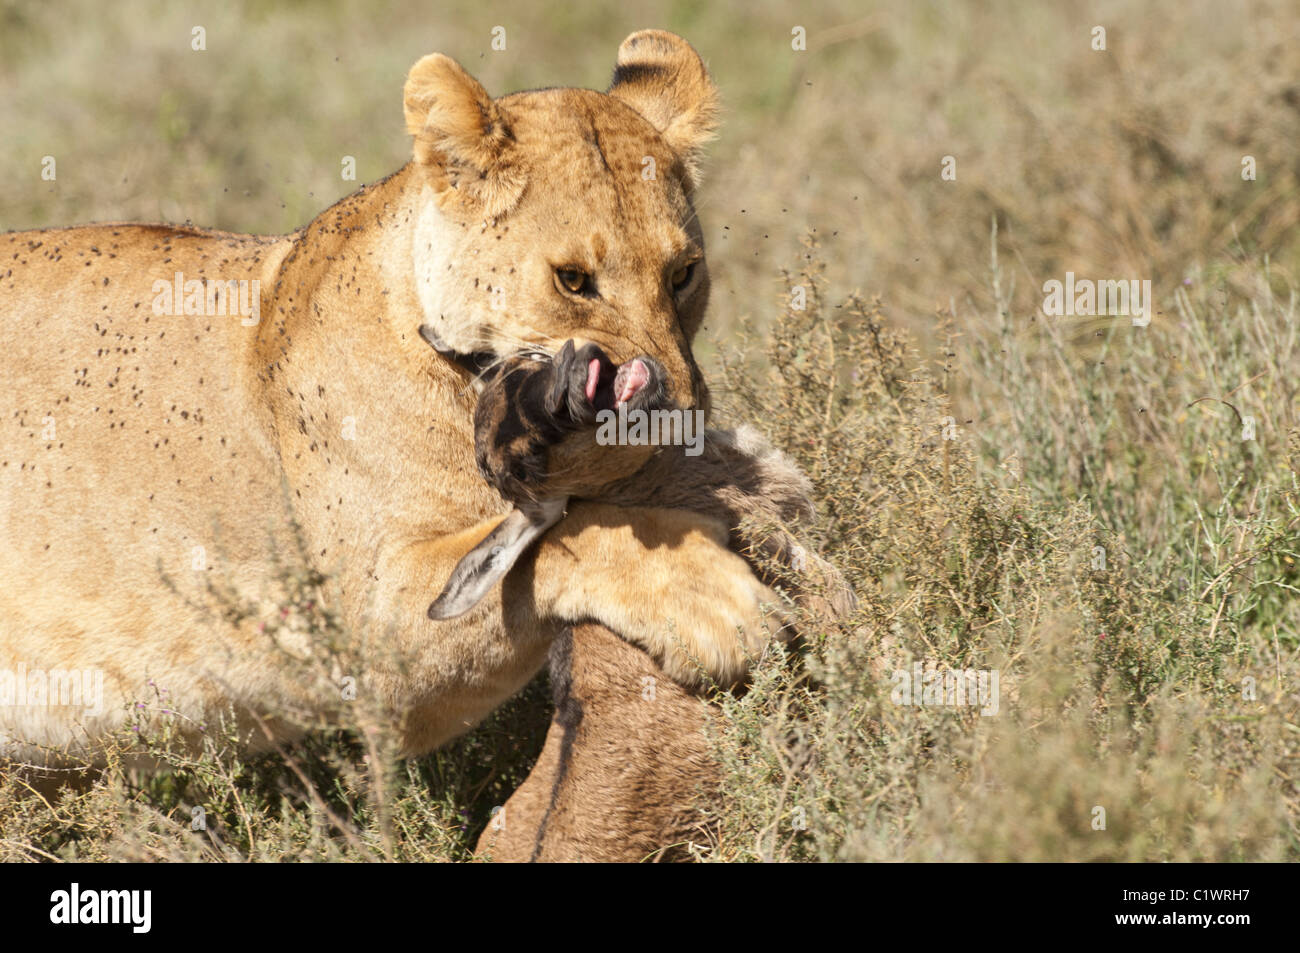 Stock photo of a lioness with a baby wildebeest kill. - Stock Image